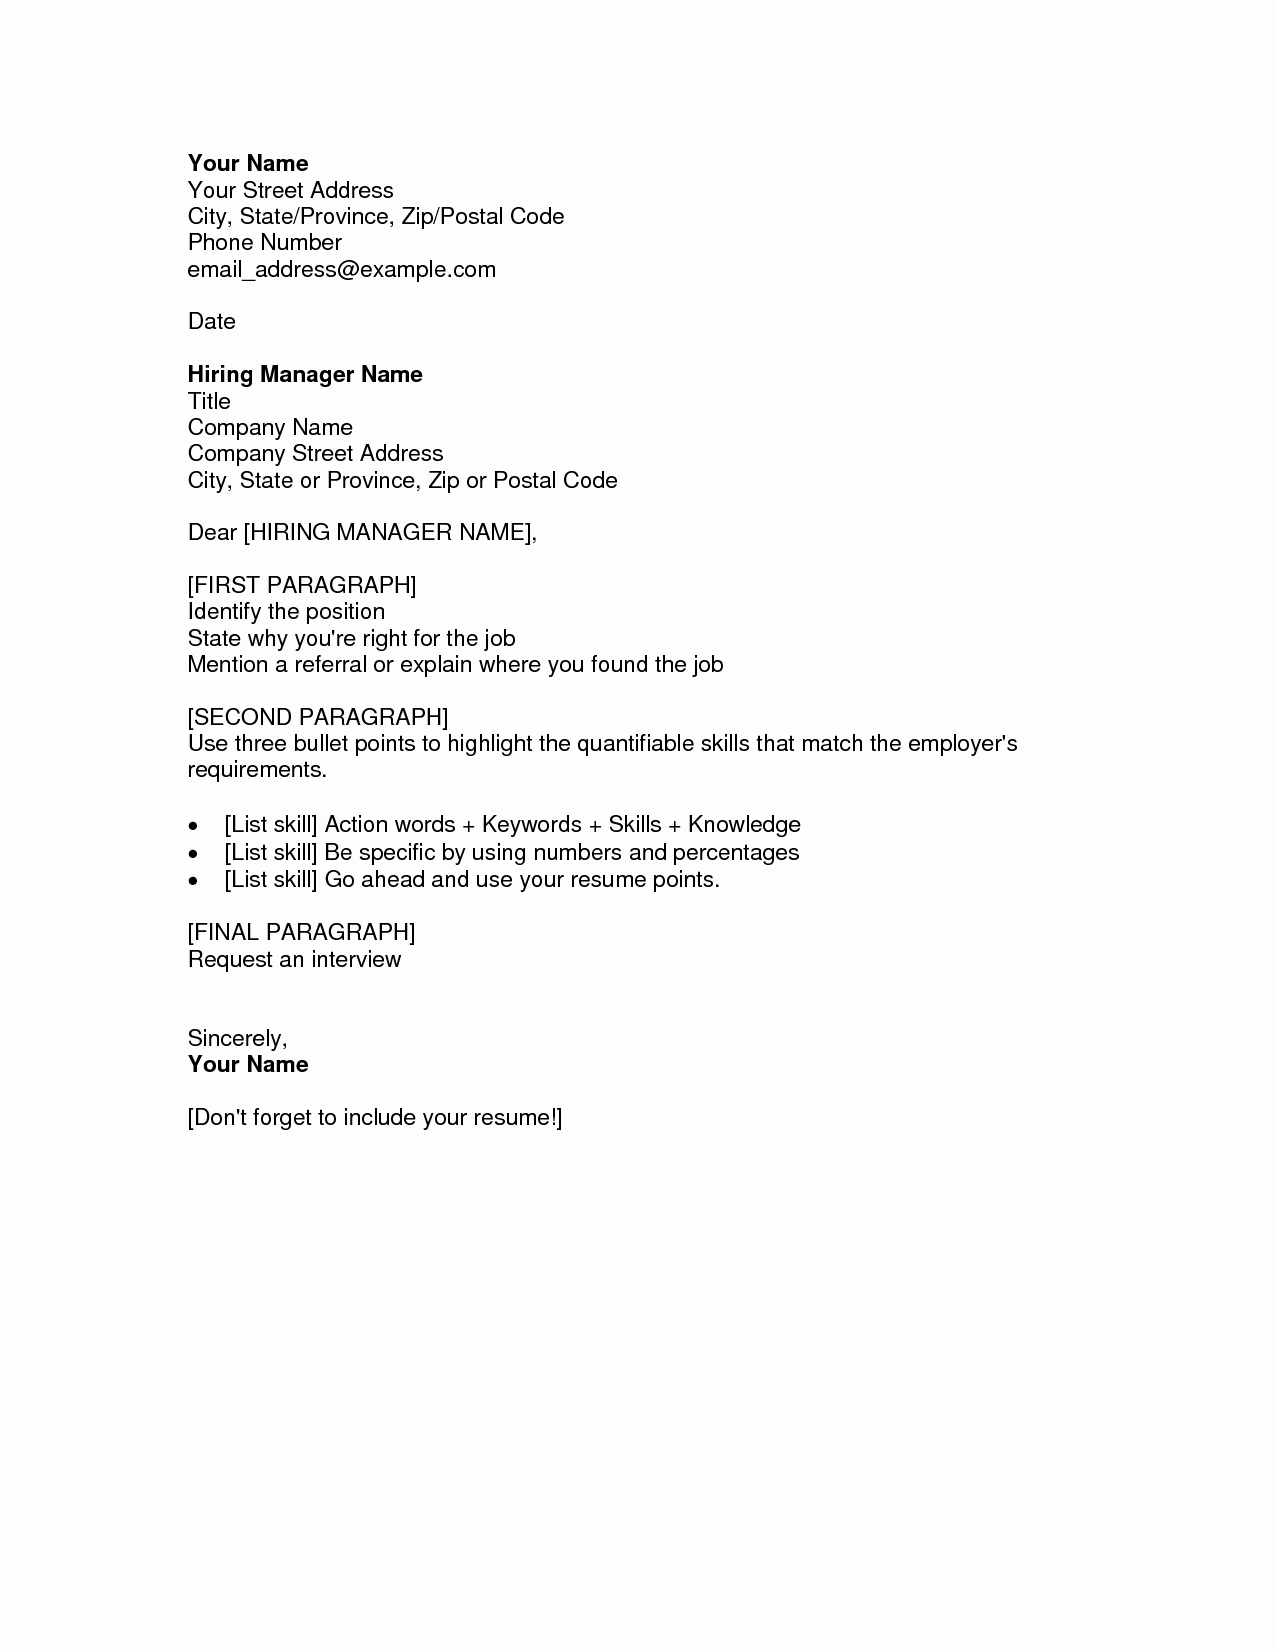 Cover Letter On A Resume Luxury Resume Cover Letter